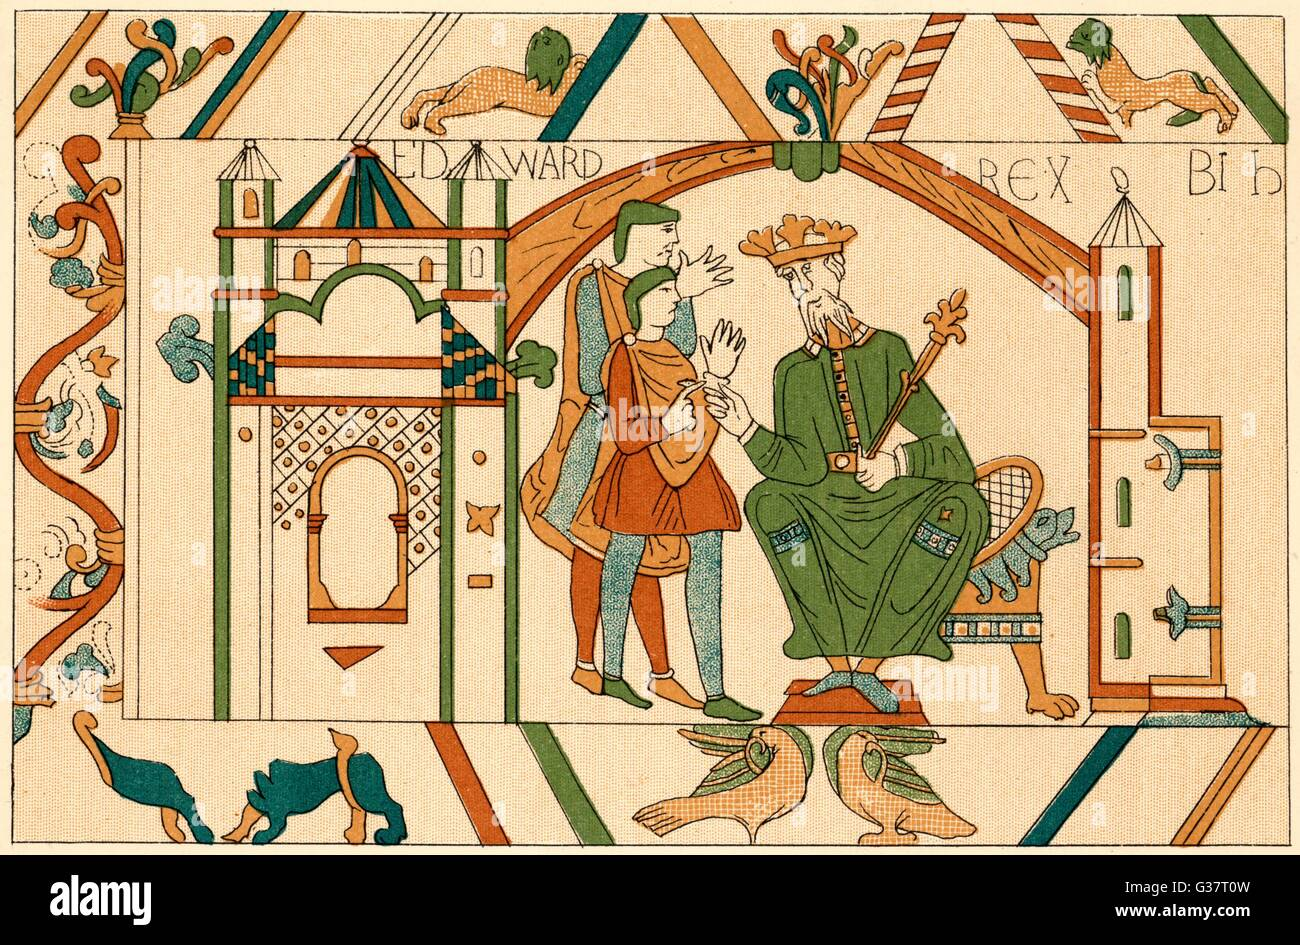 king edward the confessor sends harold earl of wessex to confirm  king edward the confessor sends harold earl of wessex to confirm to william duke of normandy that he will succeed him on the english throne date circa